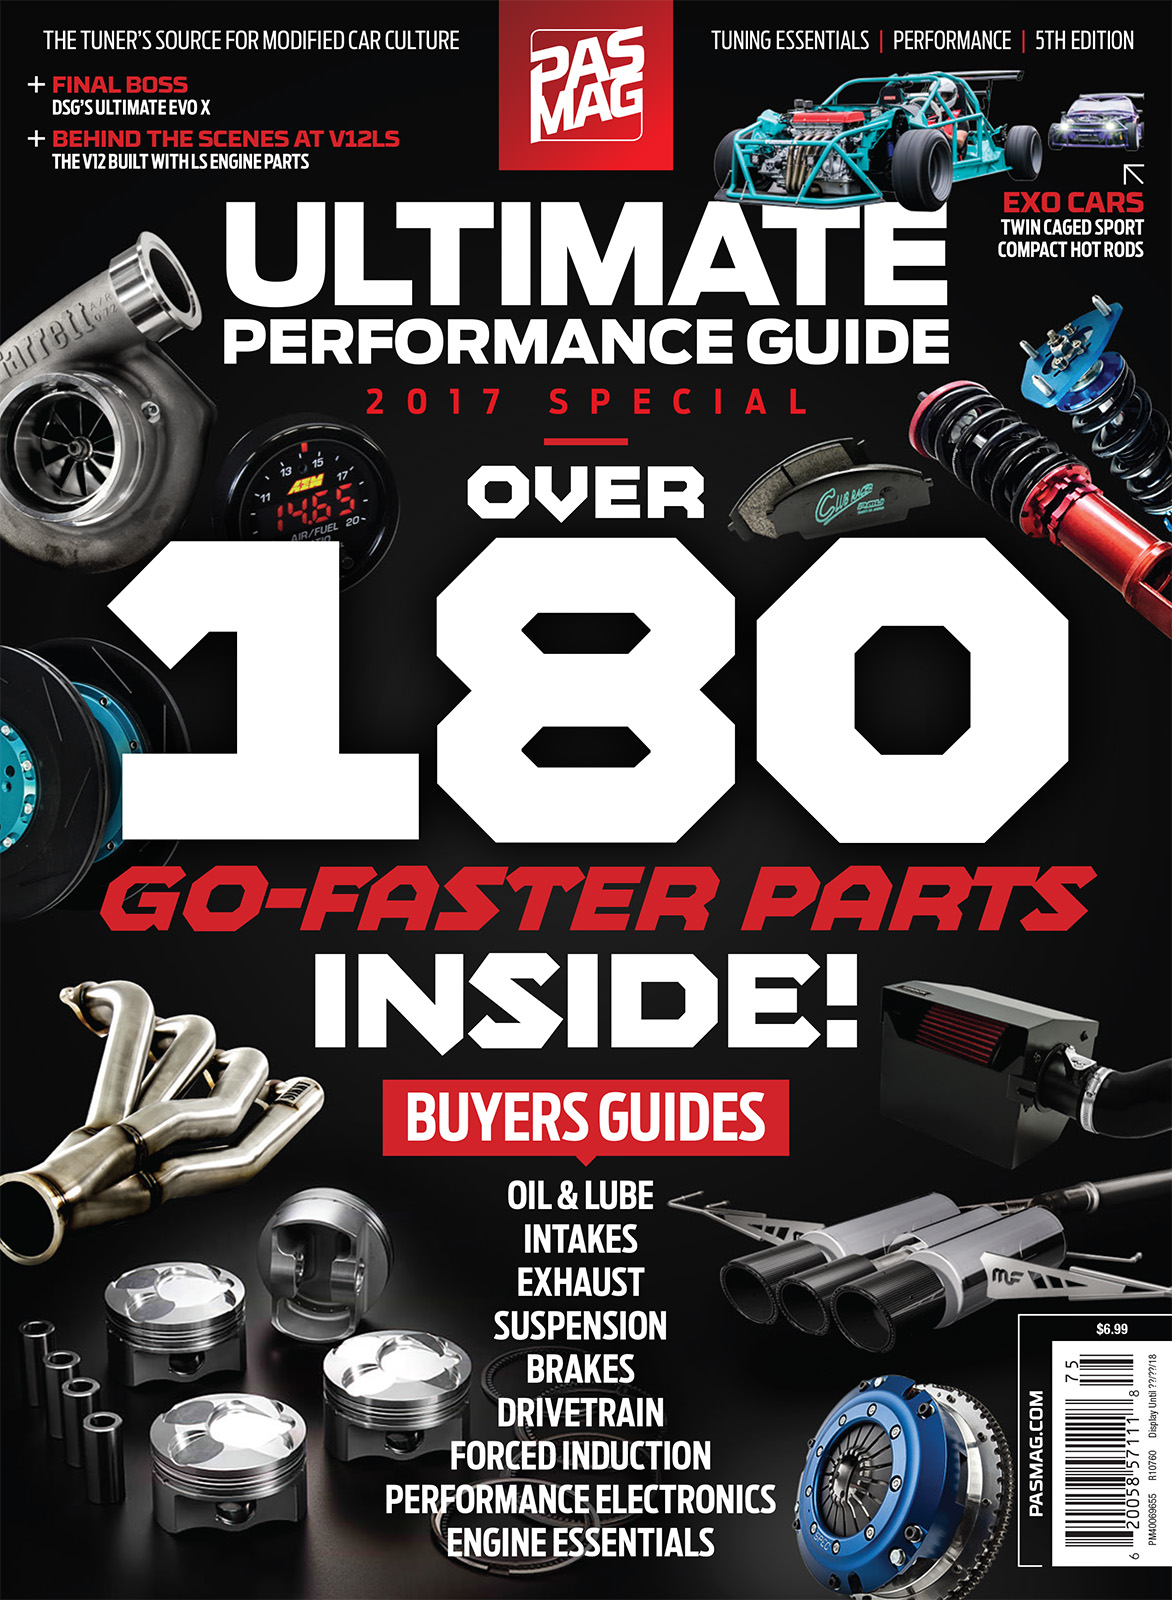 Ultimate Performance Guide Vol 5 PASMAG Tuning Essentials v1